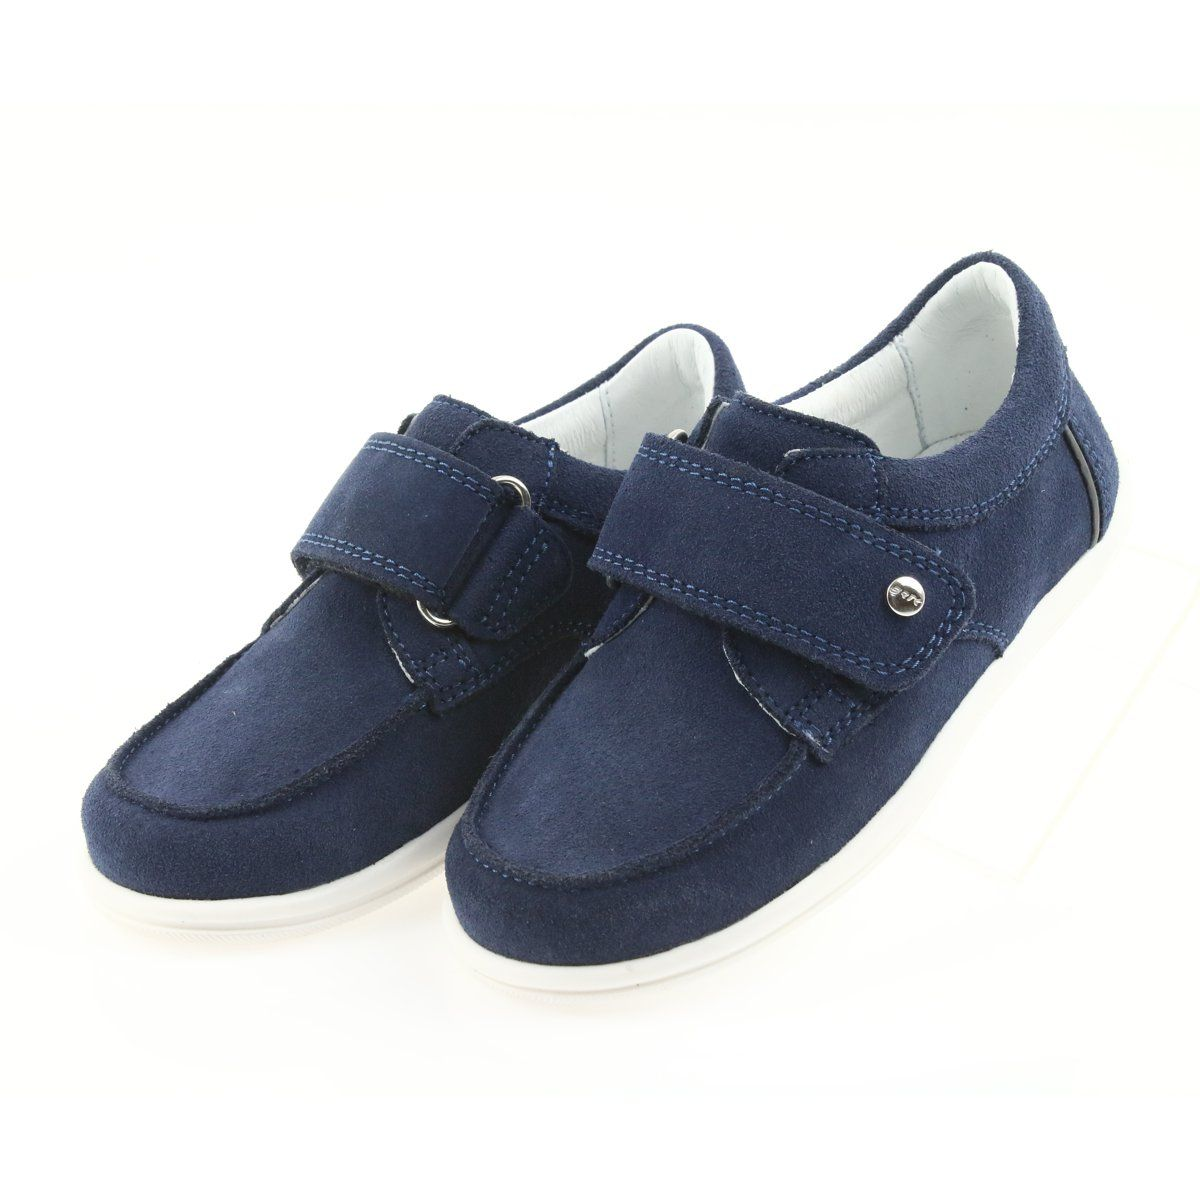 Bartek Boys Casual Shoes 55599 Grenade Navy Boys Casual Shoes Childrens Shoes Kid Shoes